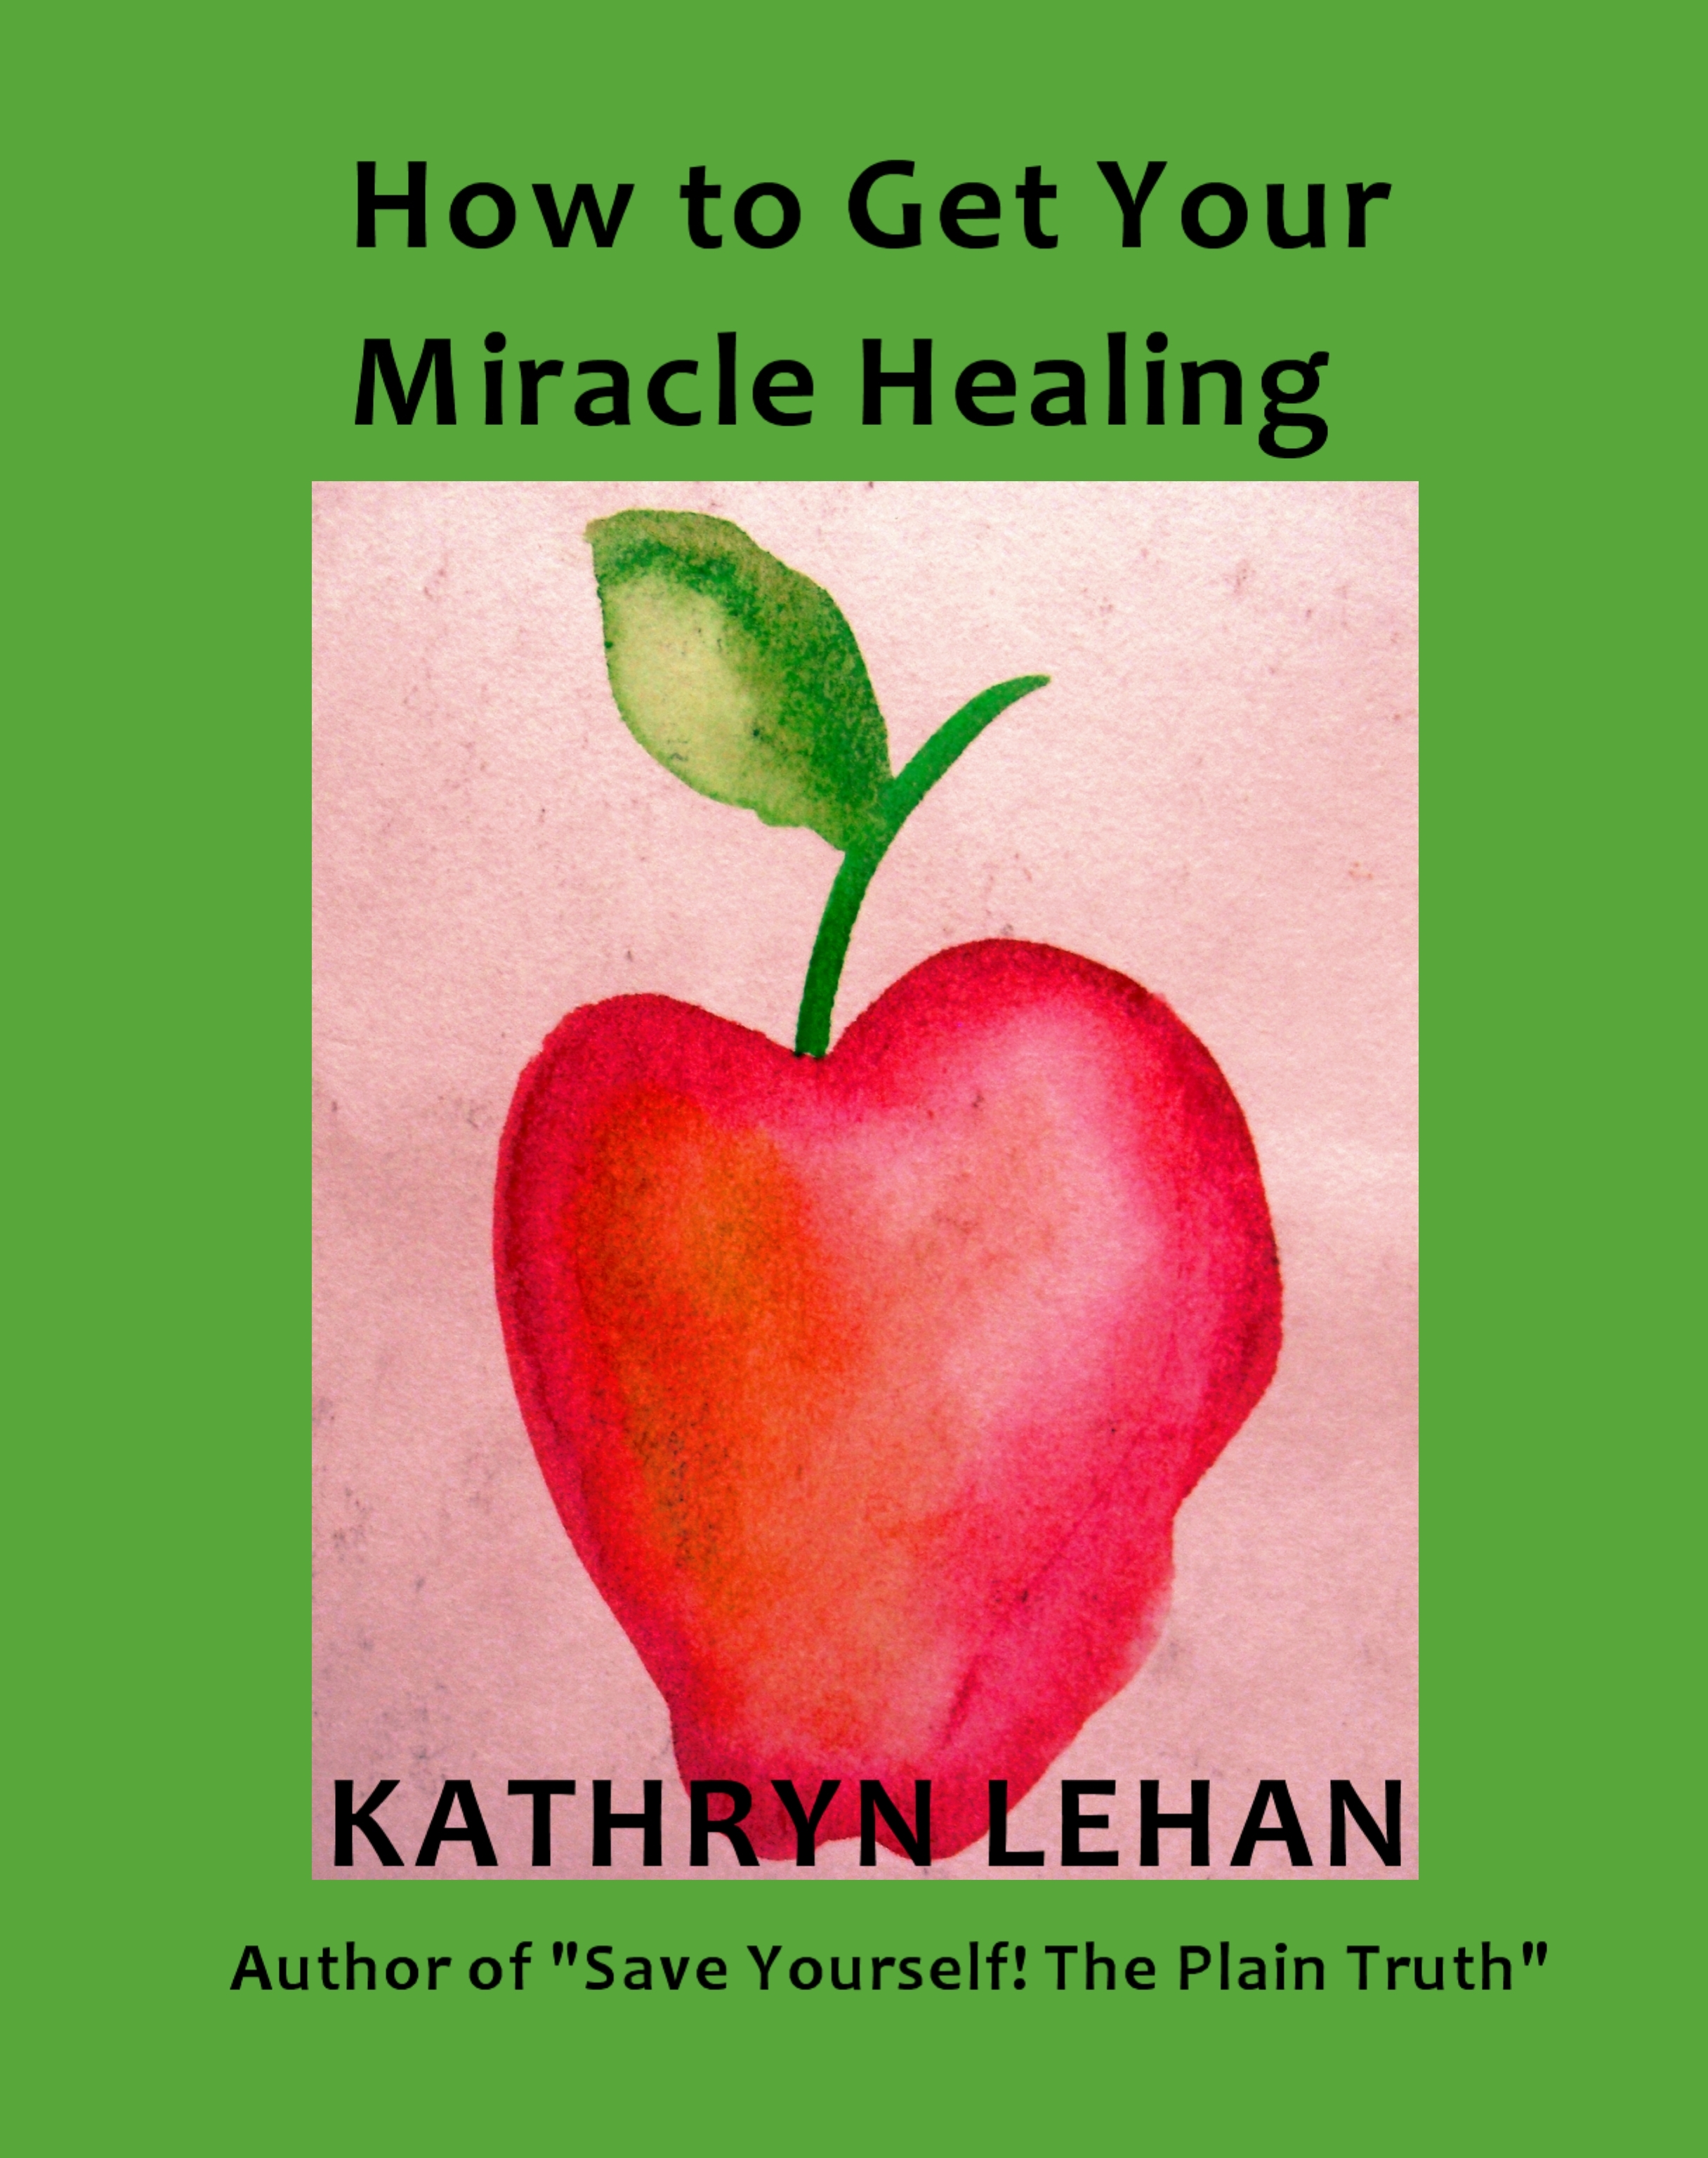 How to Get Your Miracle Healing